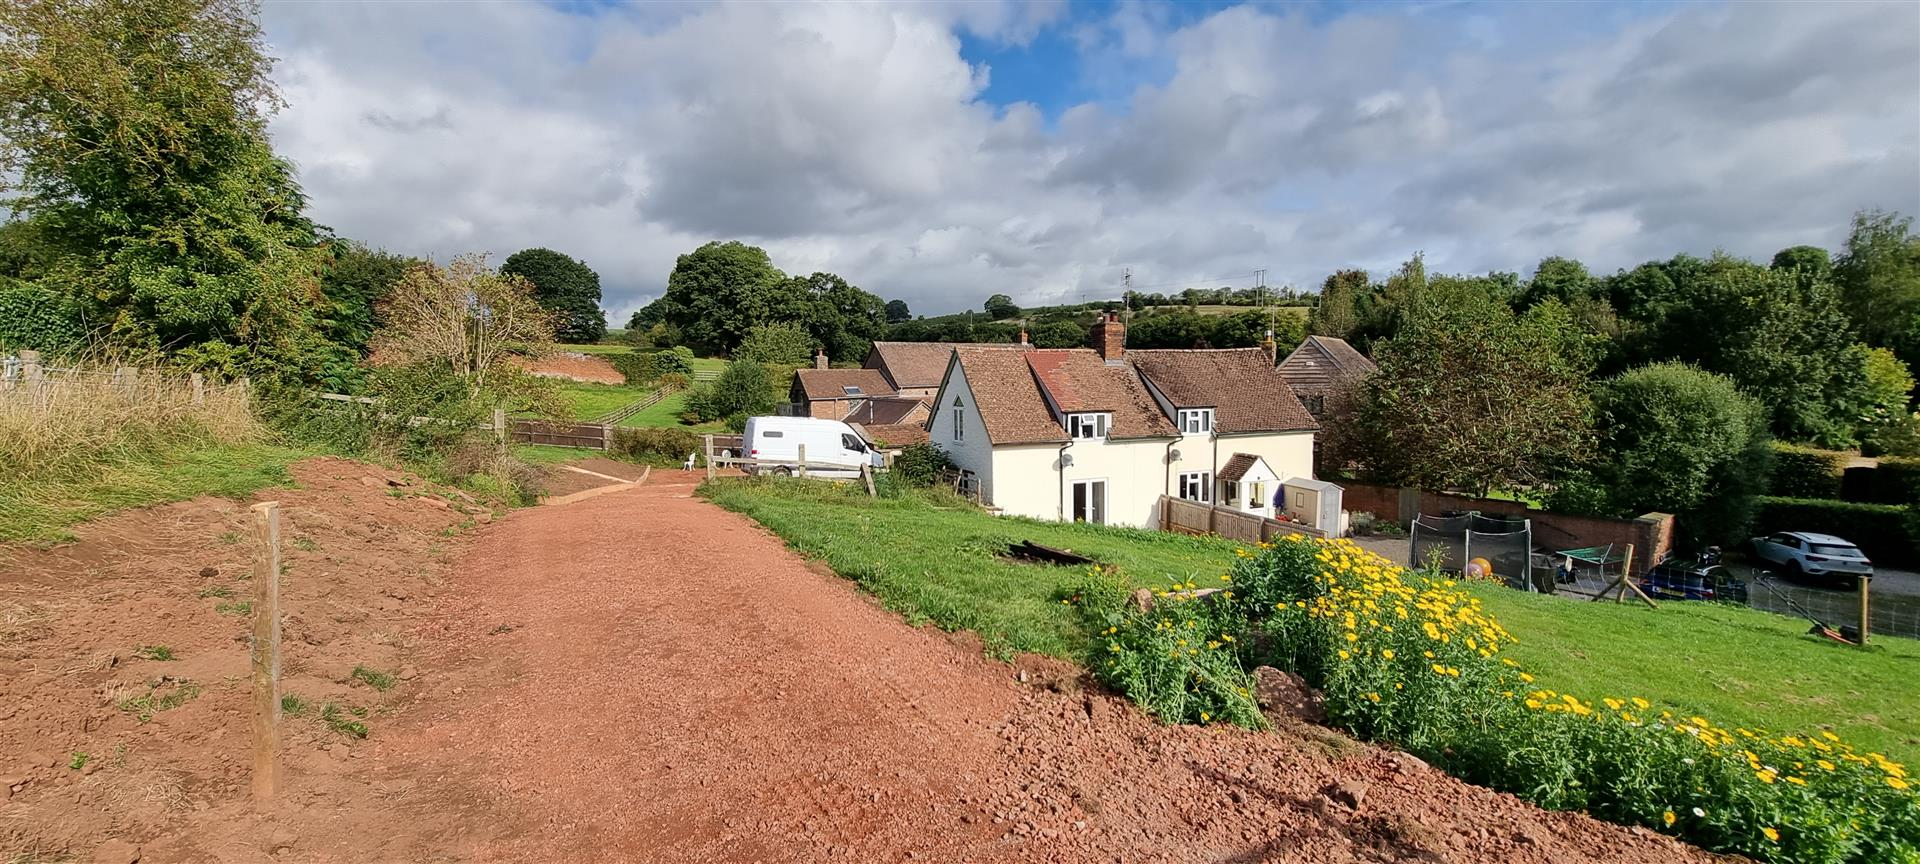 Phocle Green, Ross-on-Wye